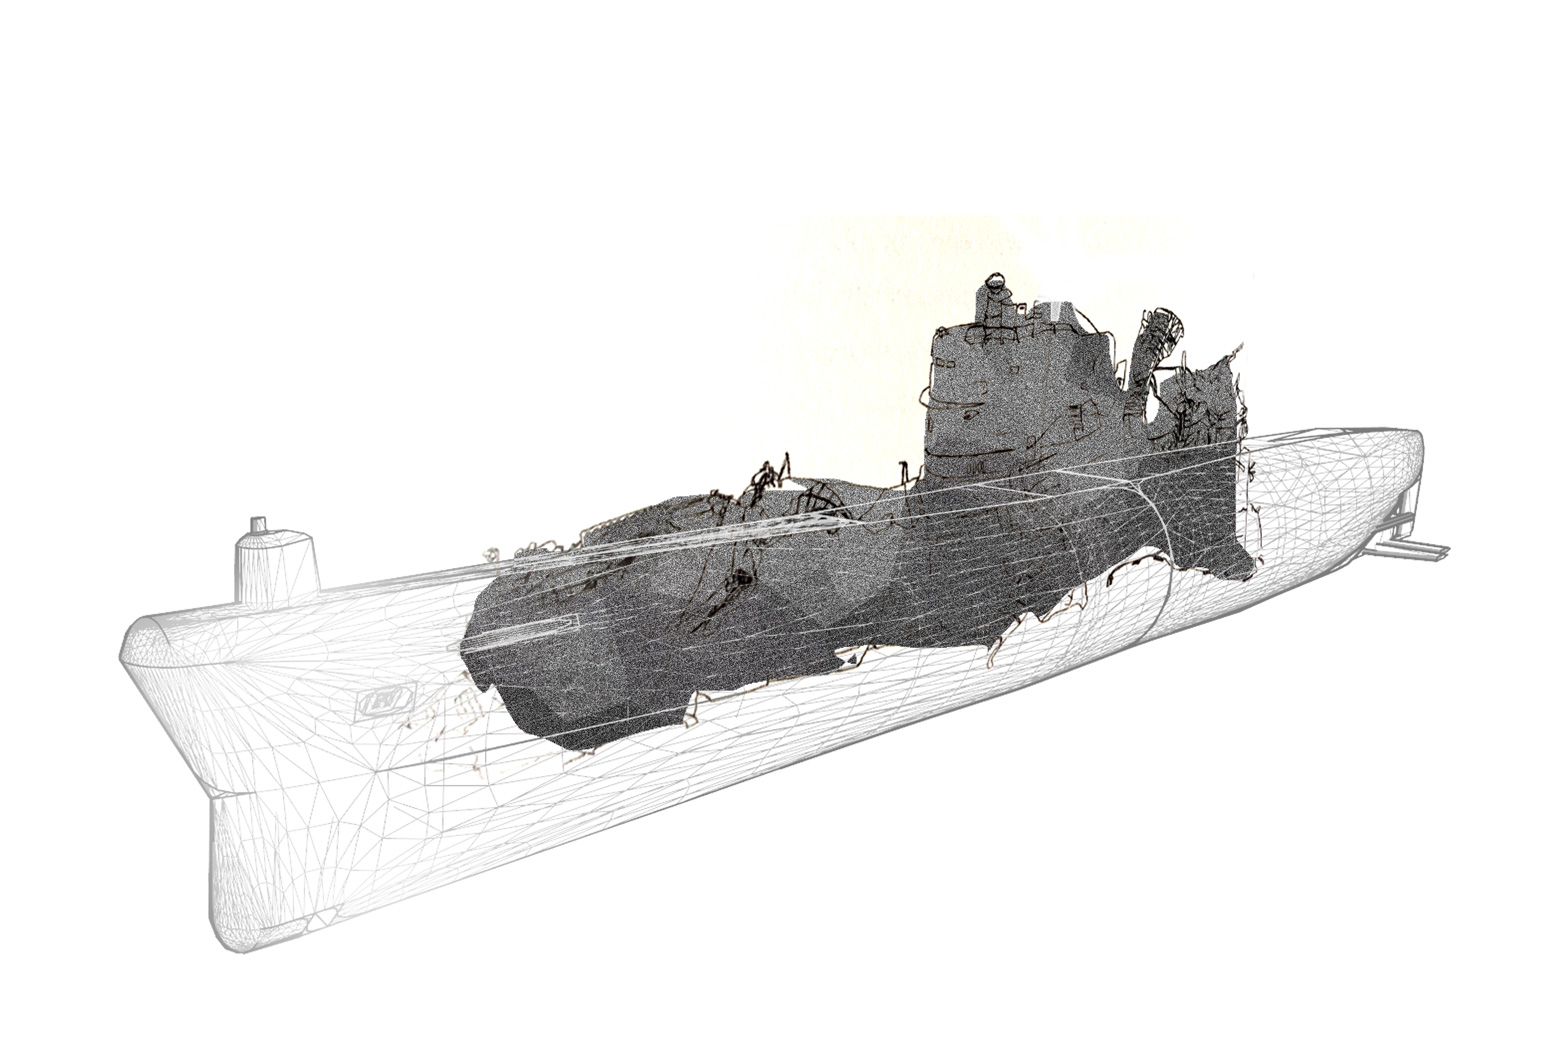 Artist's rendering of the wreck of the K-129